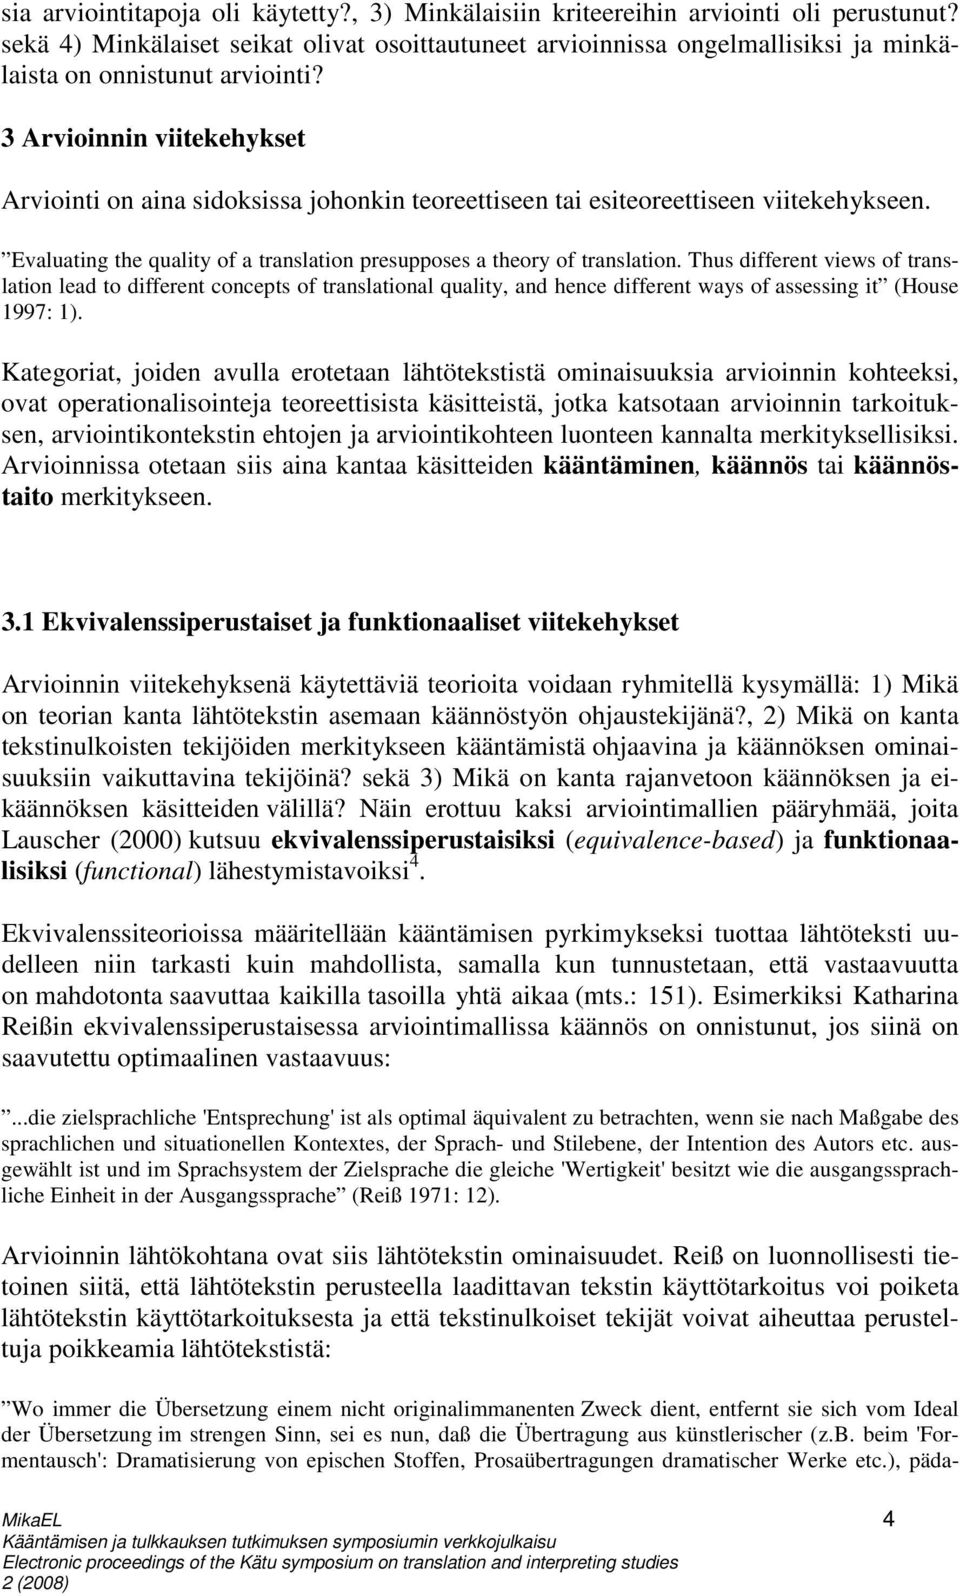 3 Arvioinnin viitekehykset Arviointi on aina sidoksissa johonkin teoreettiseen tai esiteoreettiseen viitekehykseen. Evaluating the quality of a translation presupposes a theory of translation.